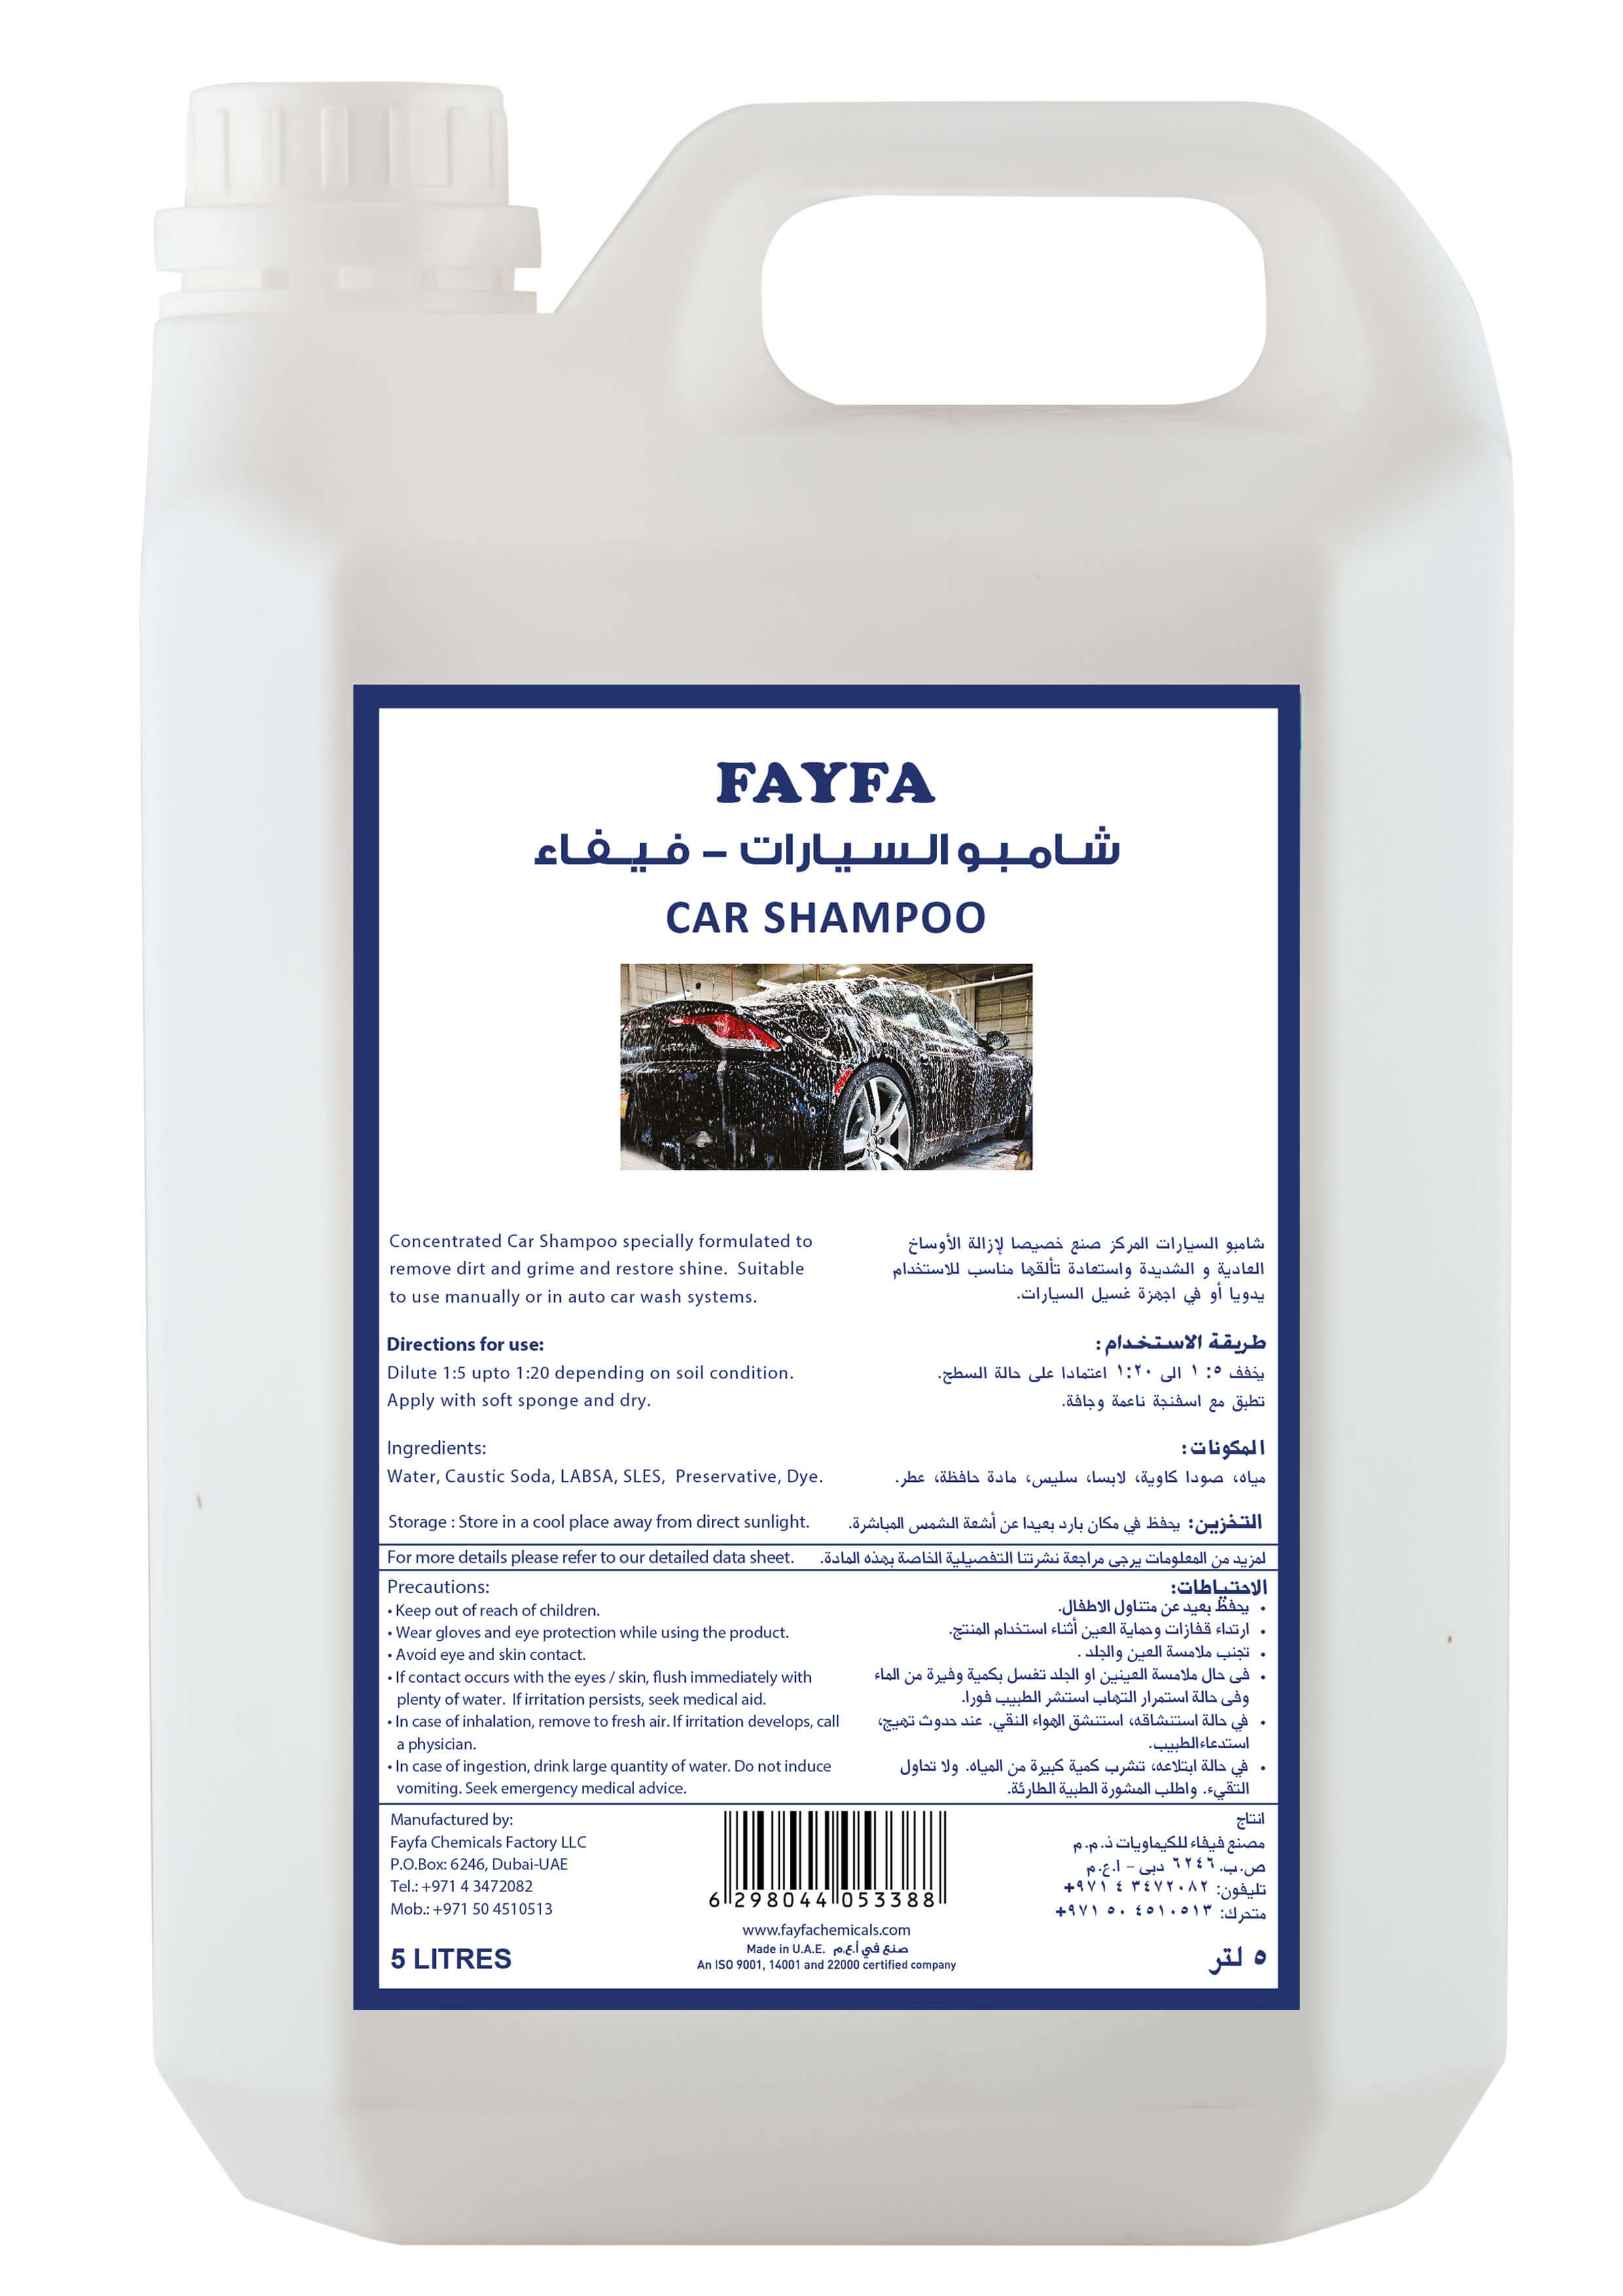 Car Shampoo Auto Shampoo Car Care Products Fayfa